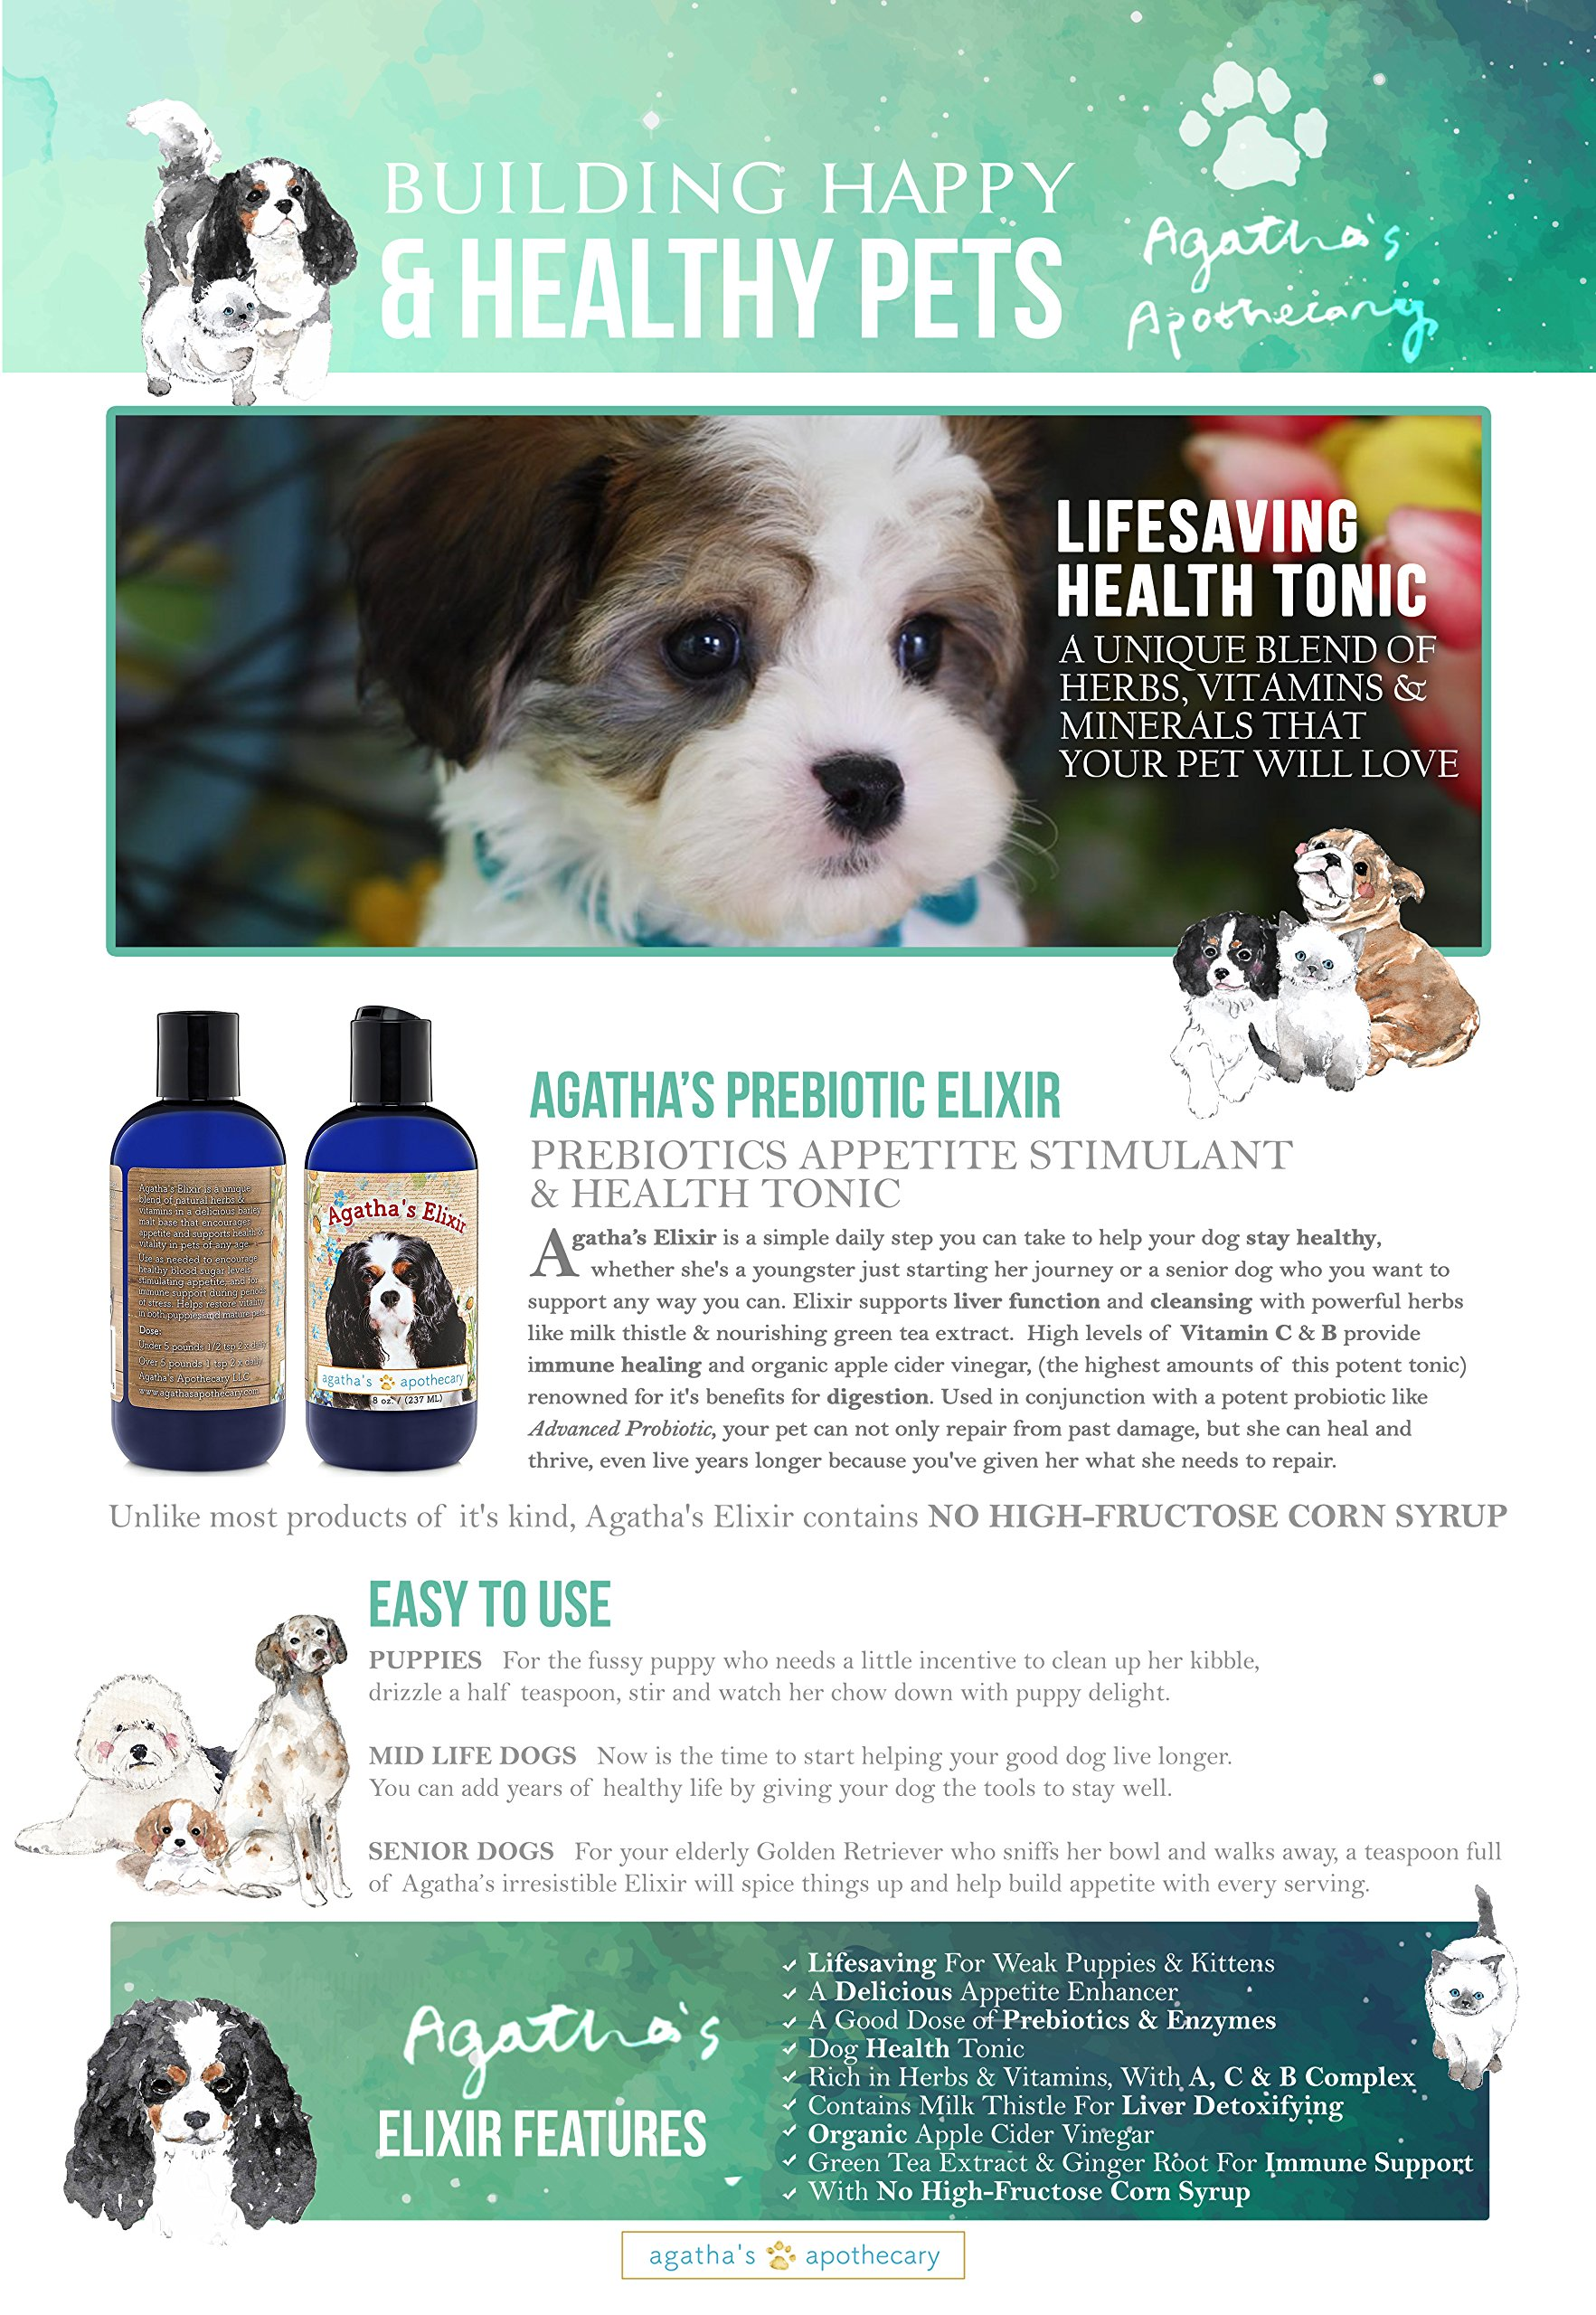 Agatha's Elixir Prebiotics for Dogs ● Appetite Stimulant for Picky Eaters and Senior Pets ● Green Tea & Milk Thistle Boost Immune System, Liver Detoxifier by Agatha's Pet Wellness (Image #7)